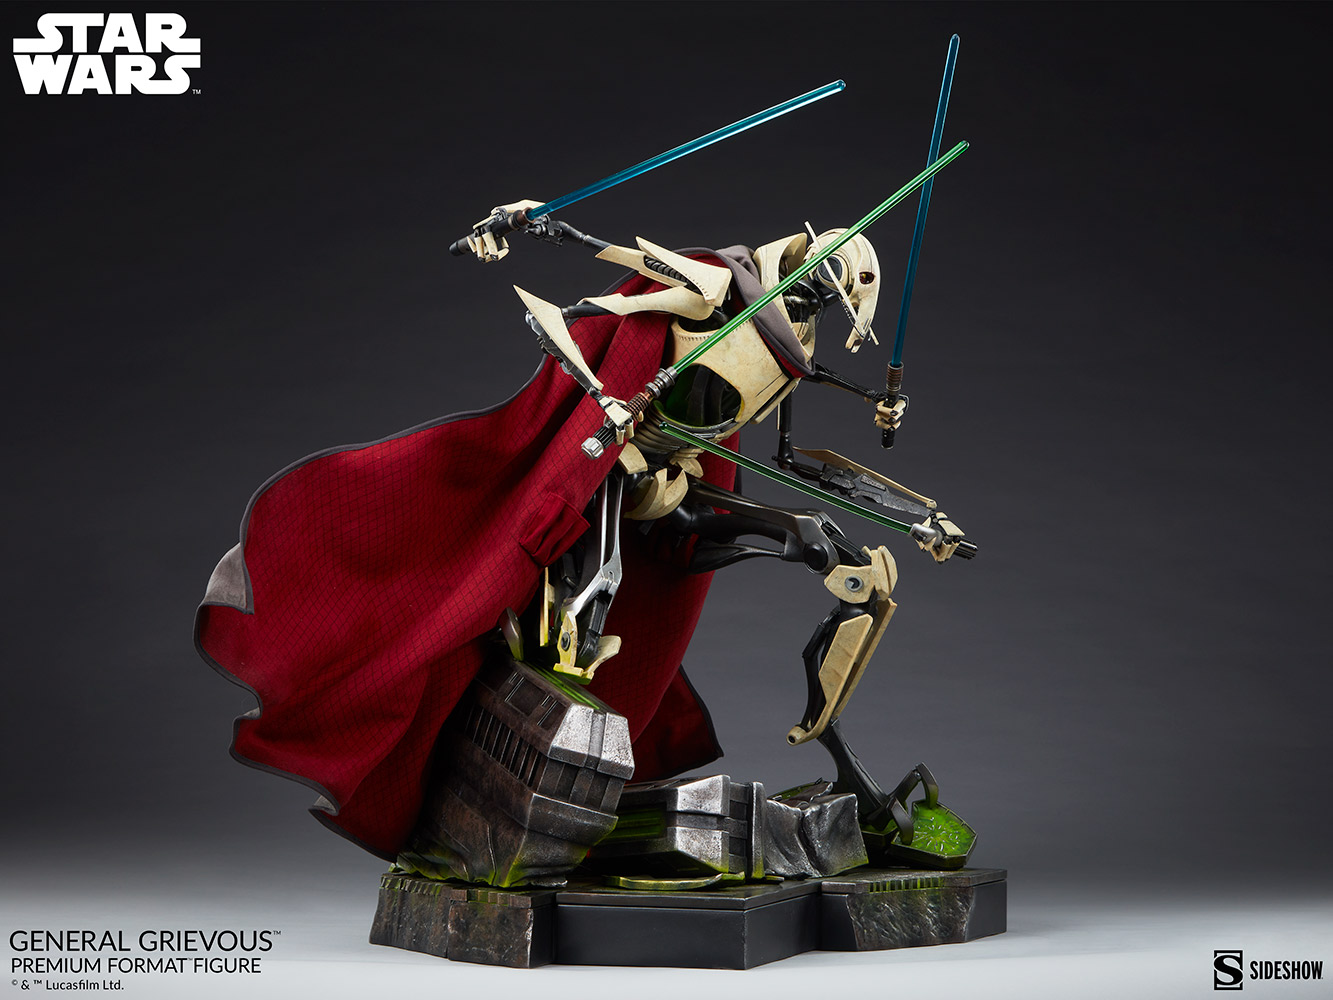 Star Wars: Revenge of the Sith : General Grievous Premium Format Figure General-grievous_star-wars_gallery_6155e661d72b9